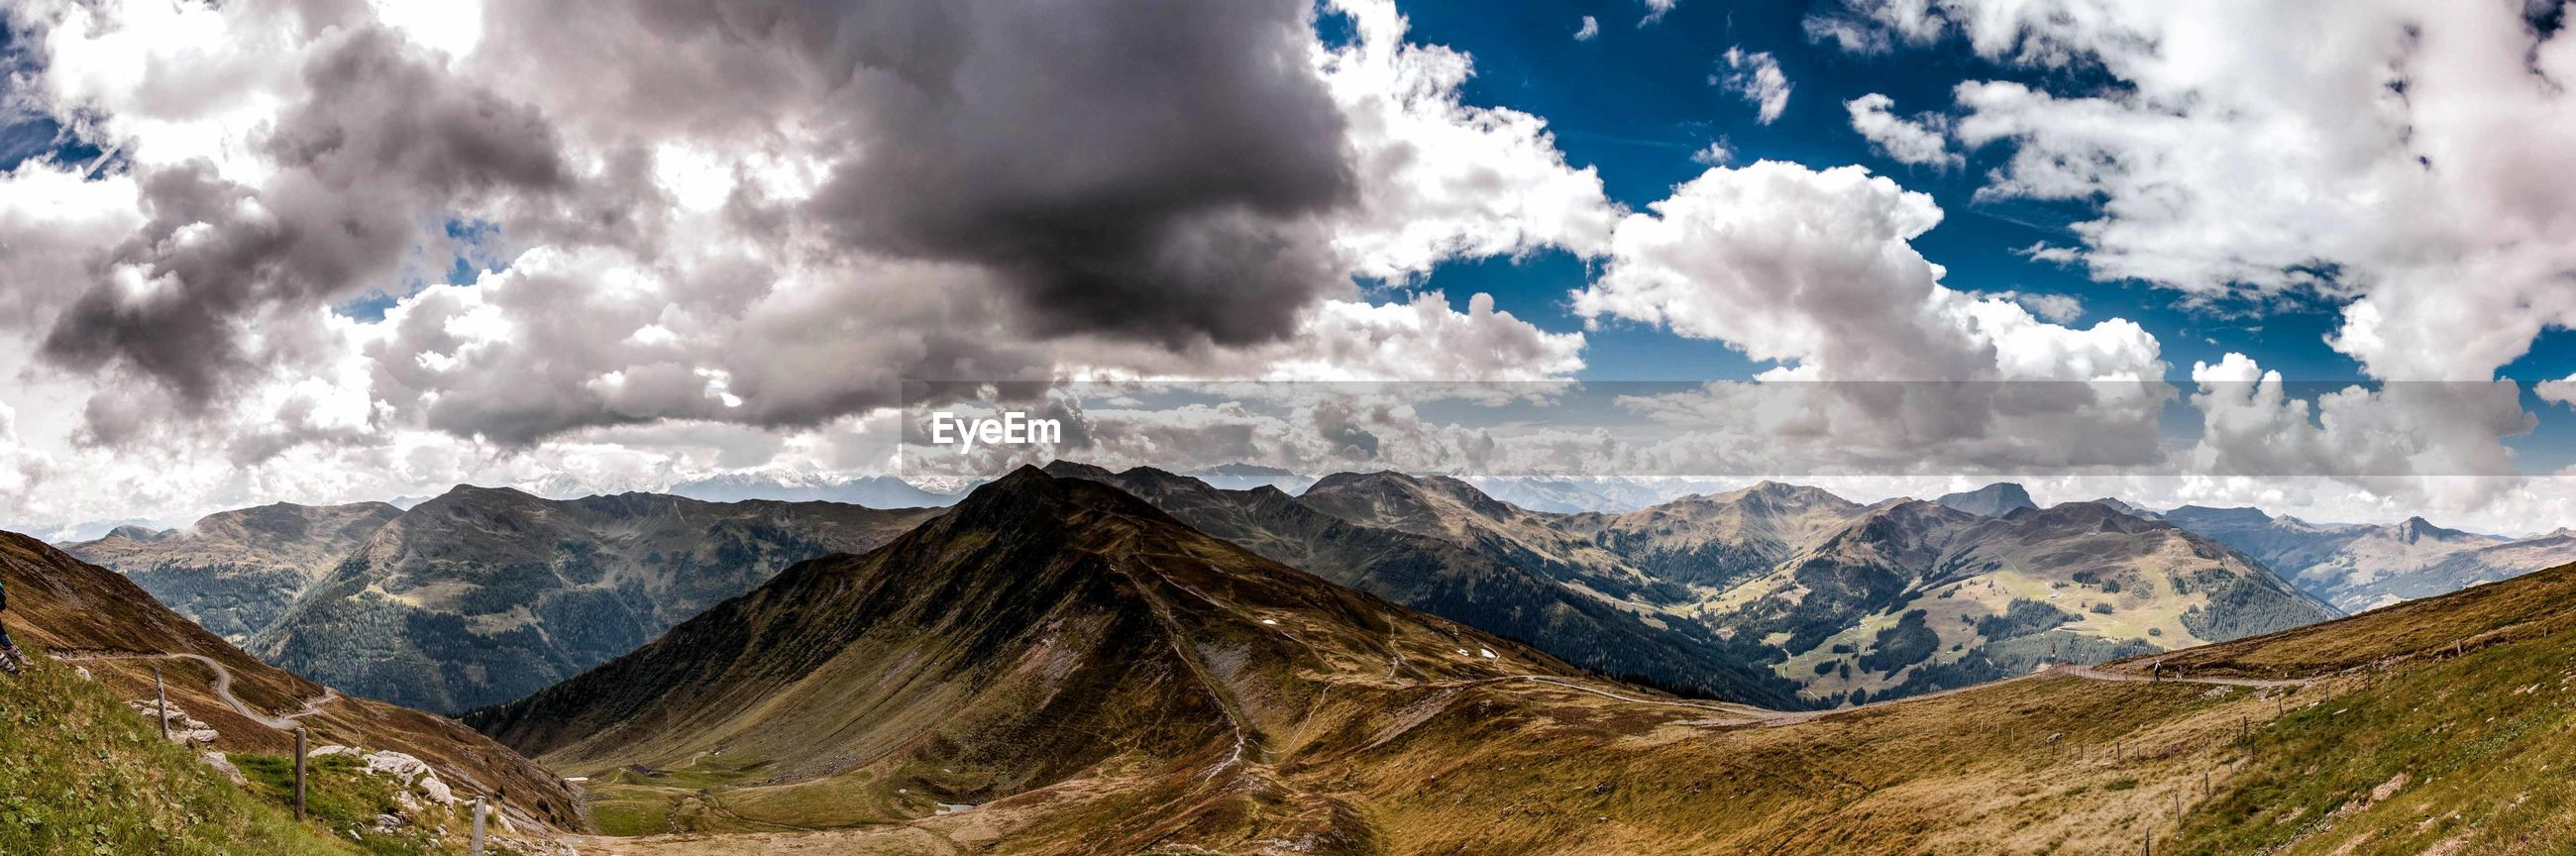 PANORAMIC VIEW OF CLOUDS OVER MOUNTAIN